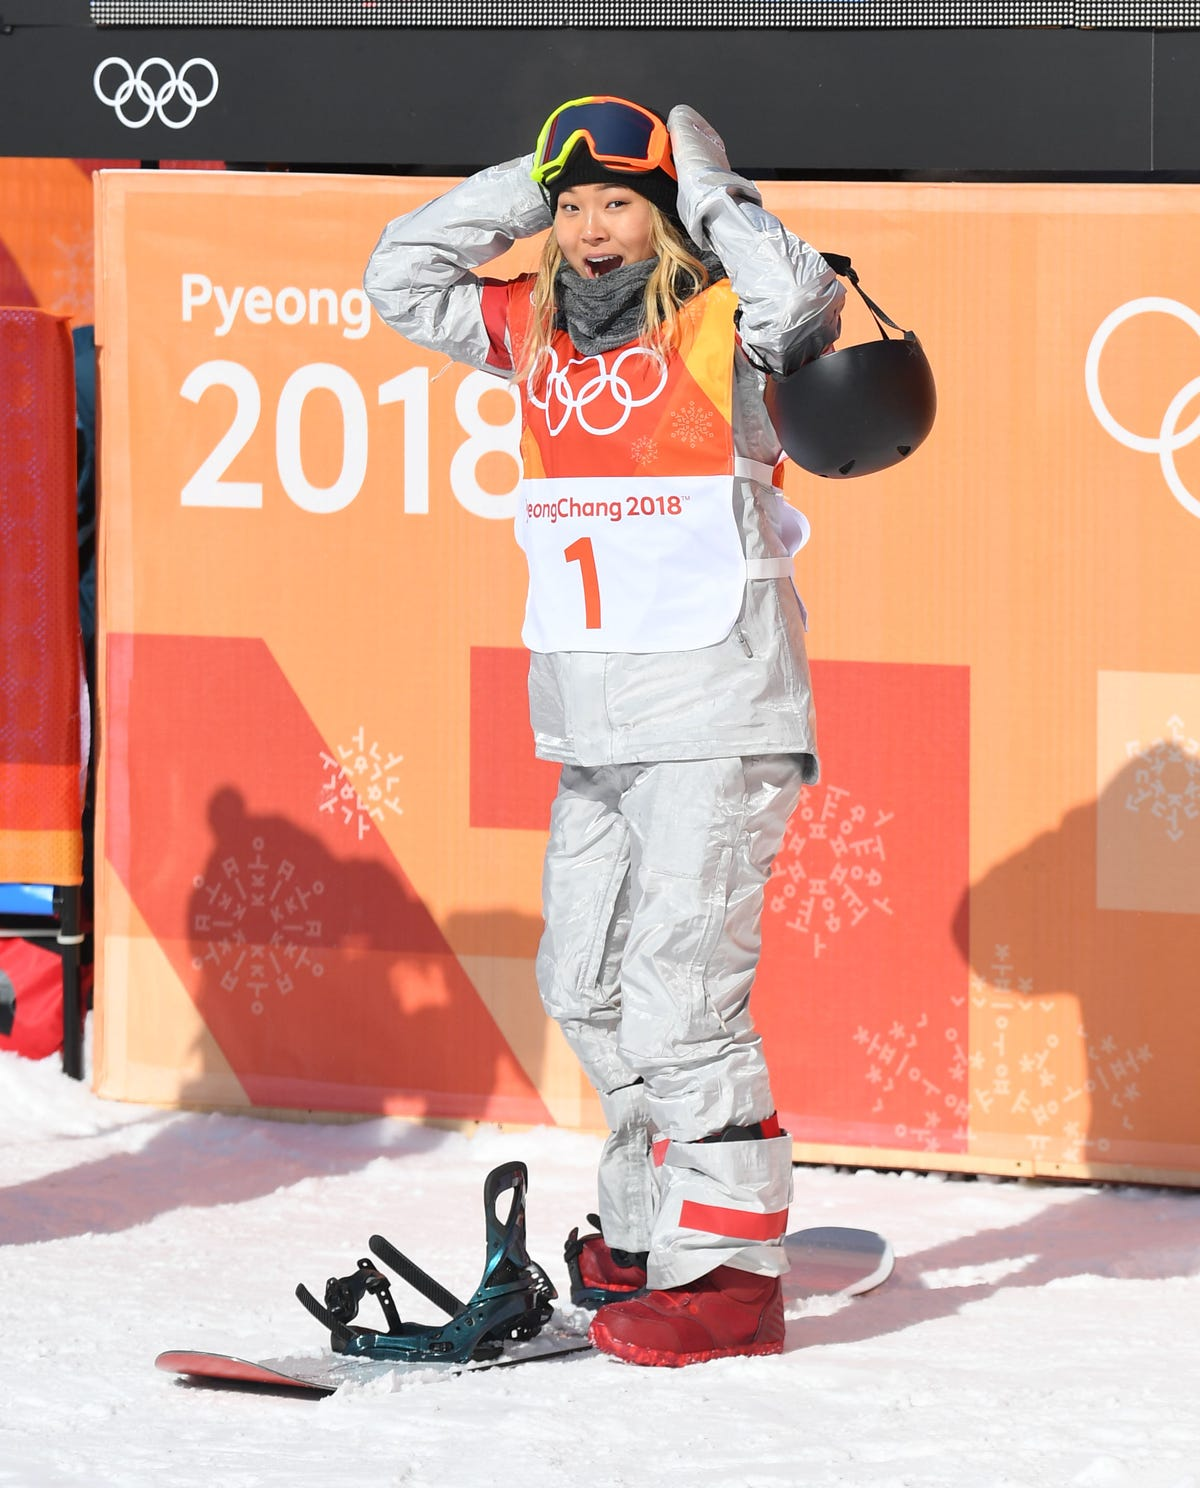 2018 Winter Olympics: Schedule, Medal Count & Latest News